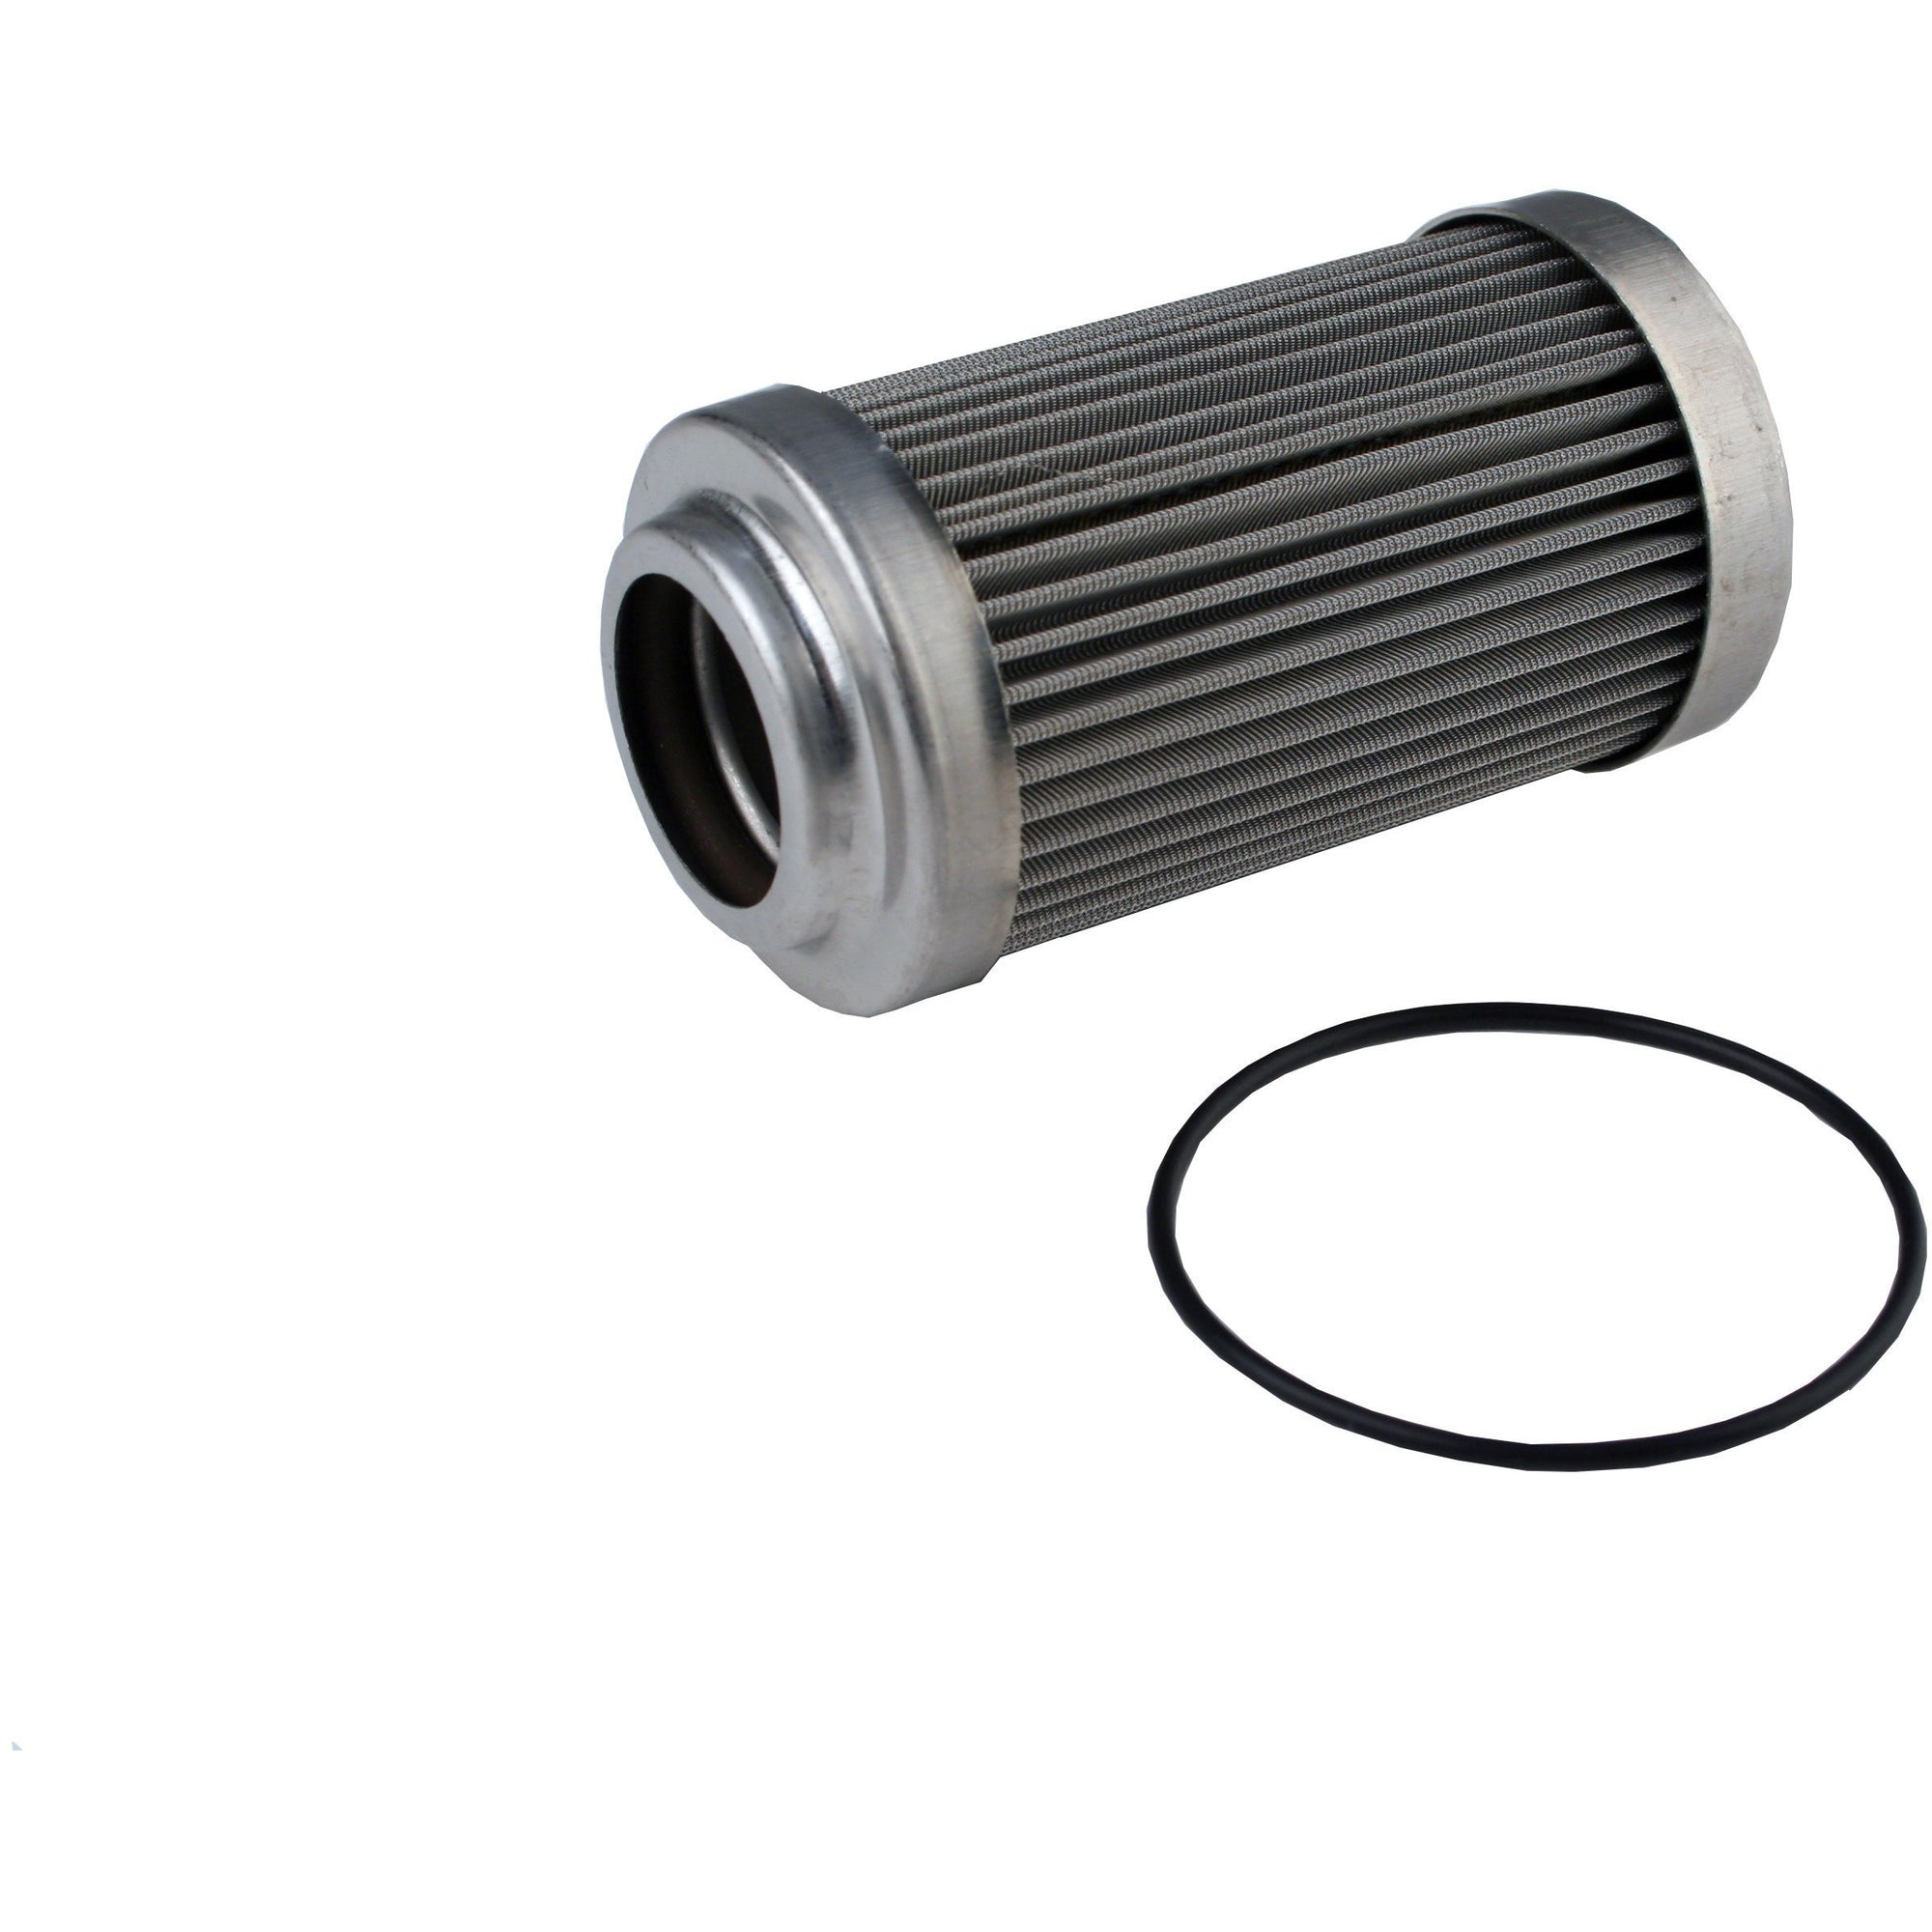 Aeromotive 40 Micron Stainless Element for ORB-10 Filter 12635-Aeromotive-Motion Raceworks